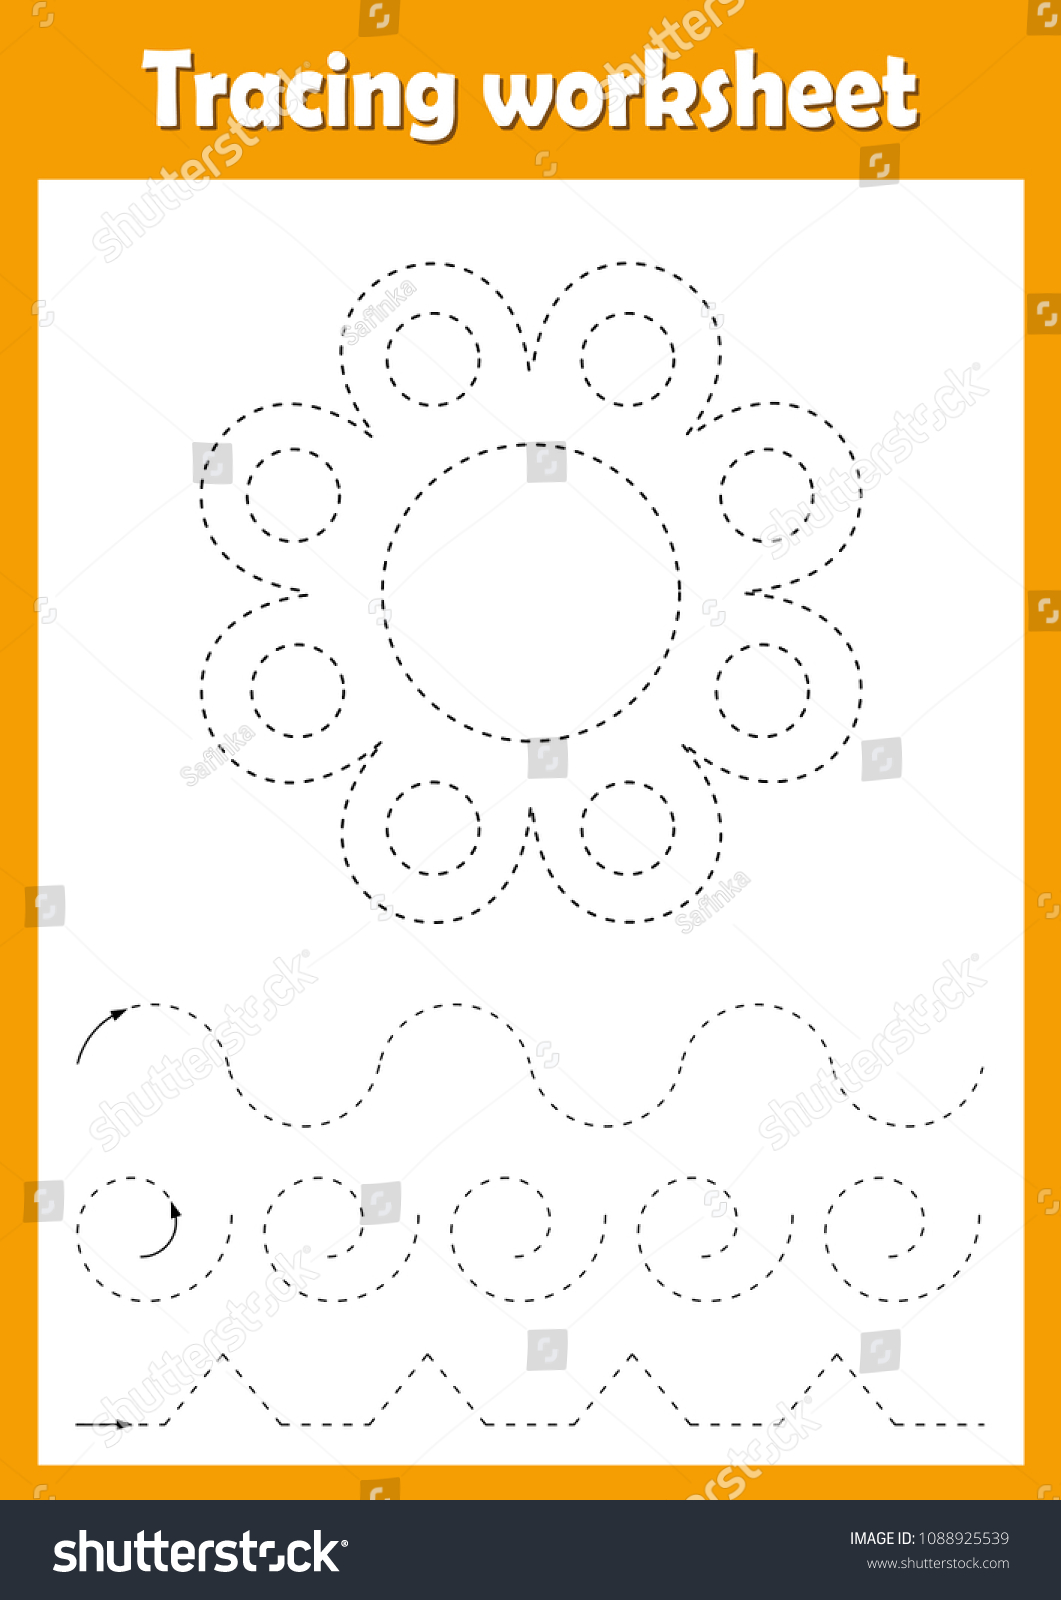 Preschool Kindergarten Tracing Worksheet Dashed Lines Stock Vector